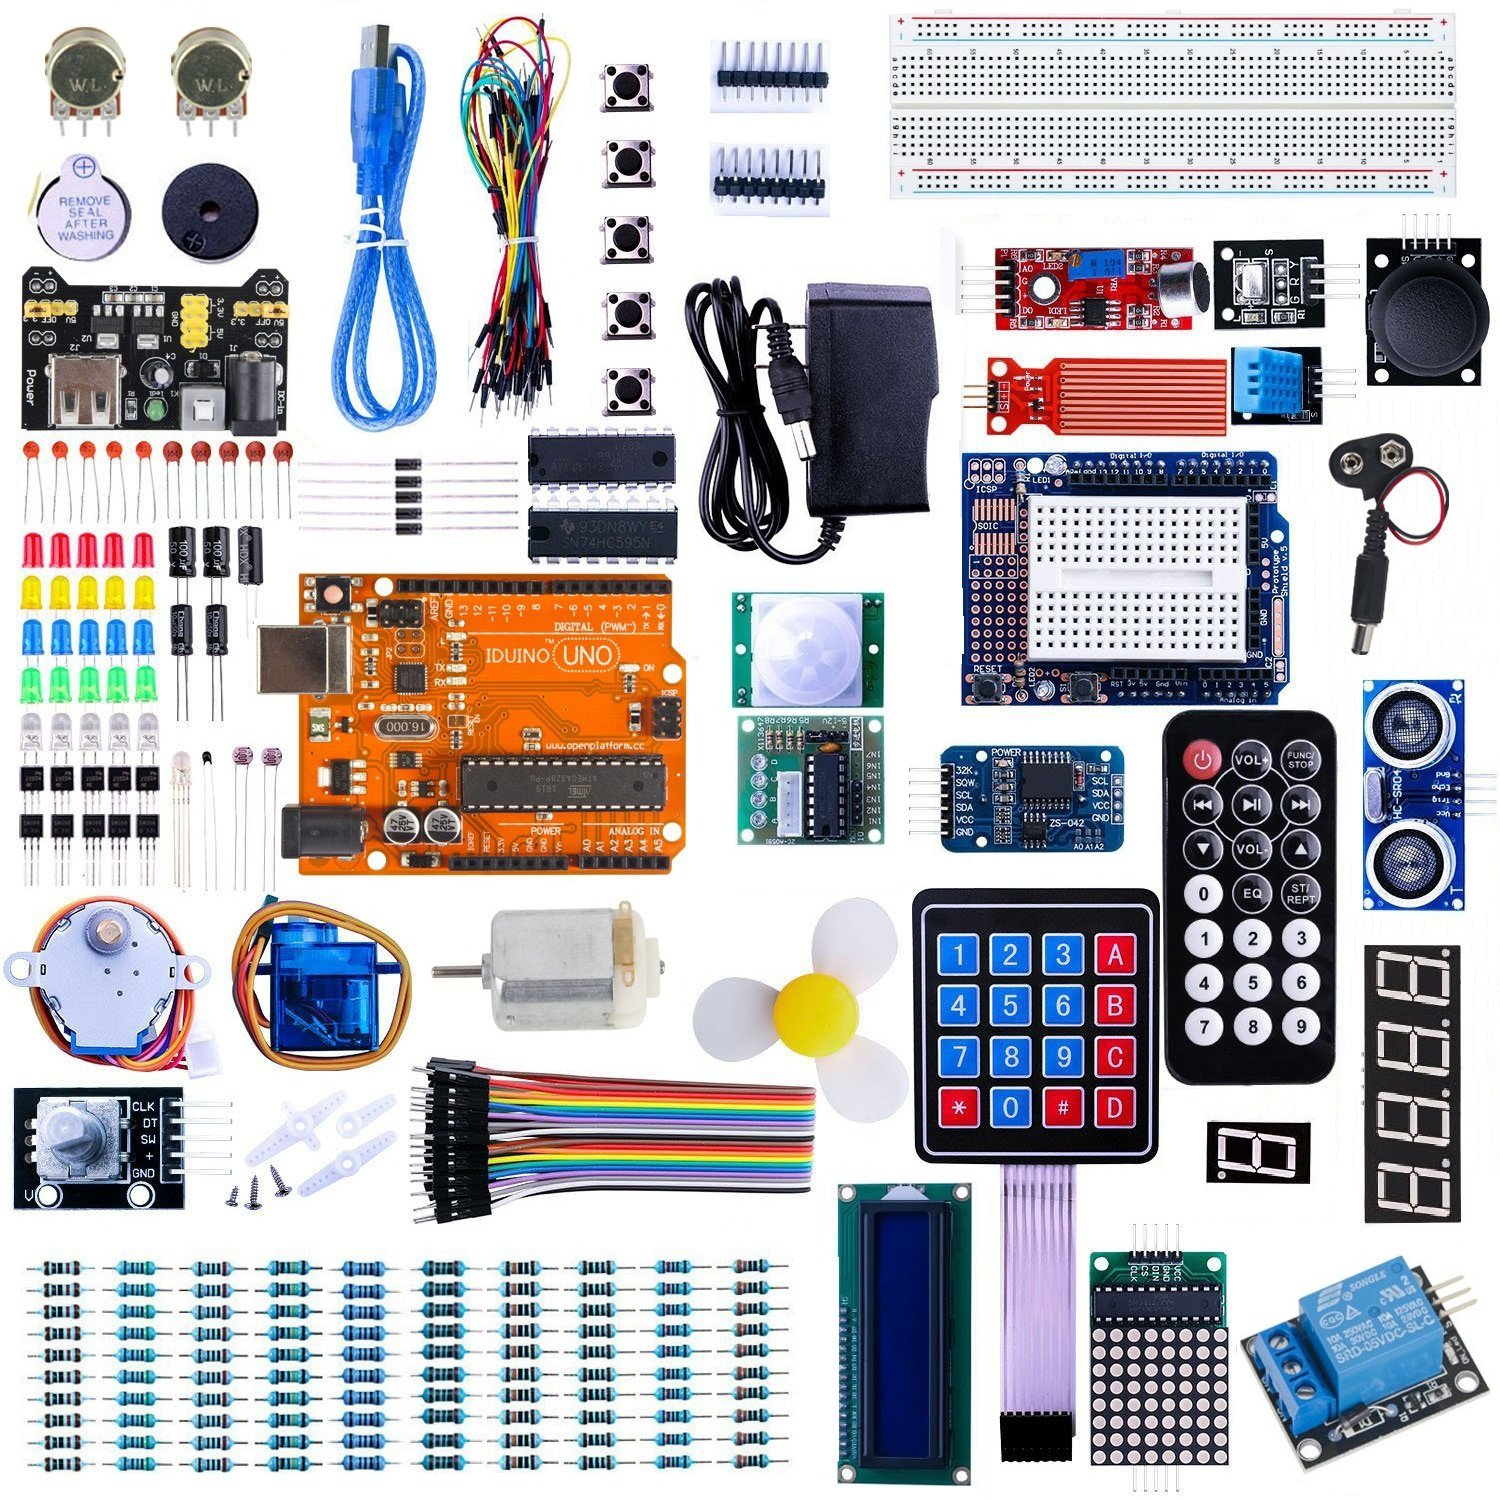 Iduino Uno Starter Kit For Arduino Project Board Kits W High Current Relay 33 Lessons Tutorial Over 200 Pcs Electronic Engineering Accessories Toys Games